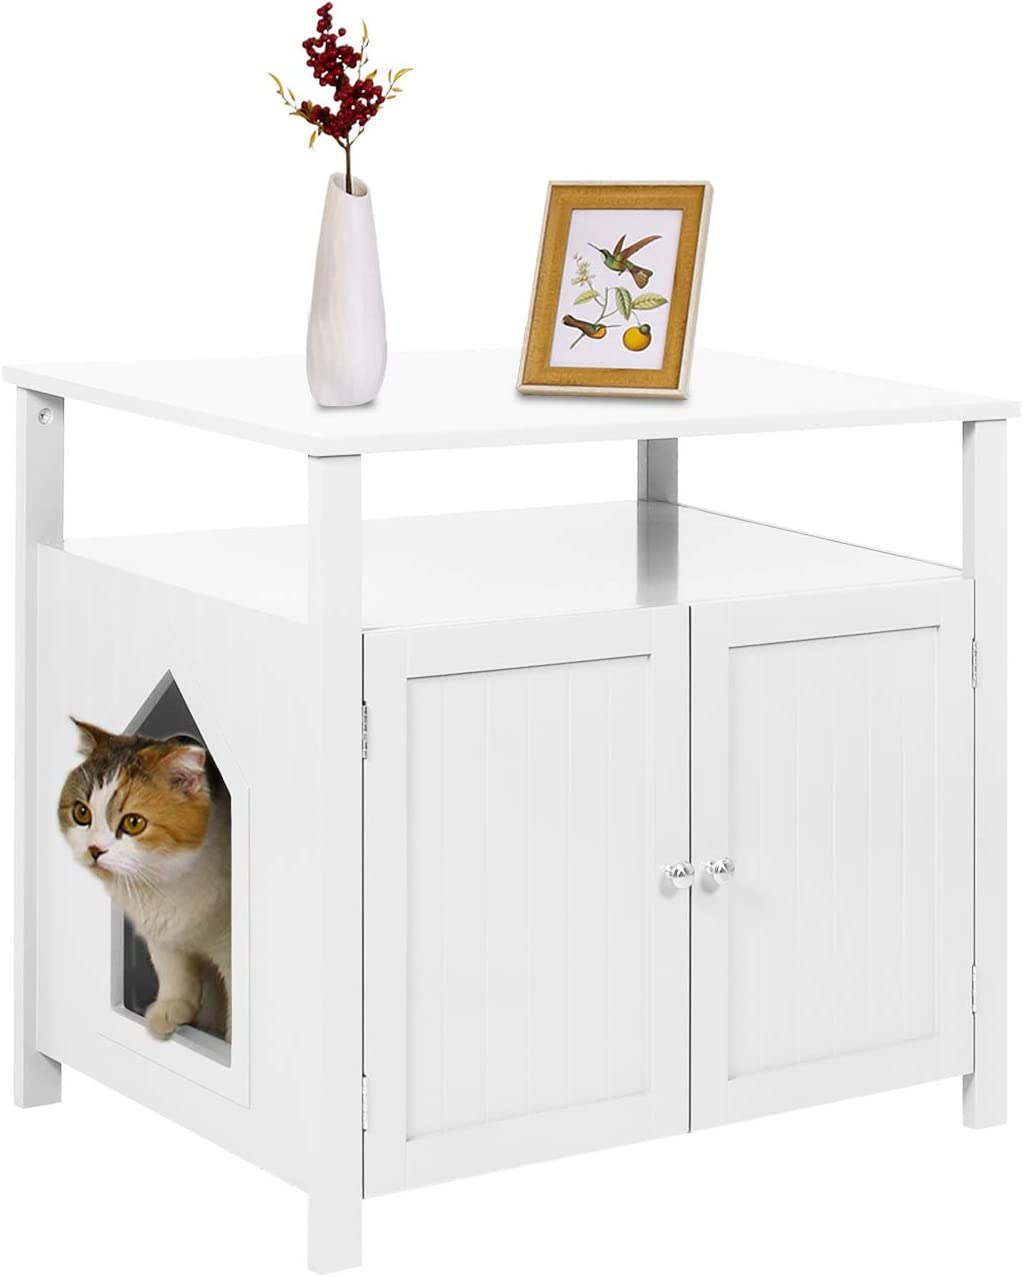 YGBH Cat Litter Box Enclosure,Hidden Litter Box, Furniture Large Box House with Table,Spacious Storage, Easy Assembly Cat Litter Funiture